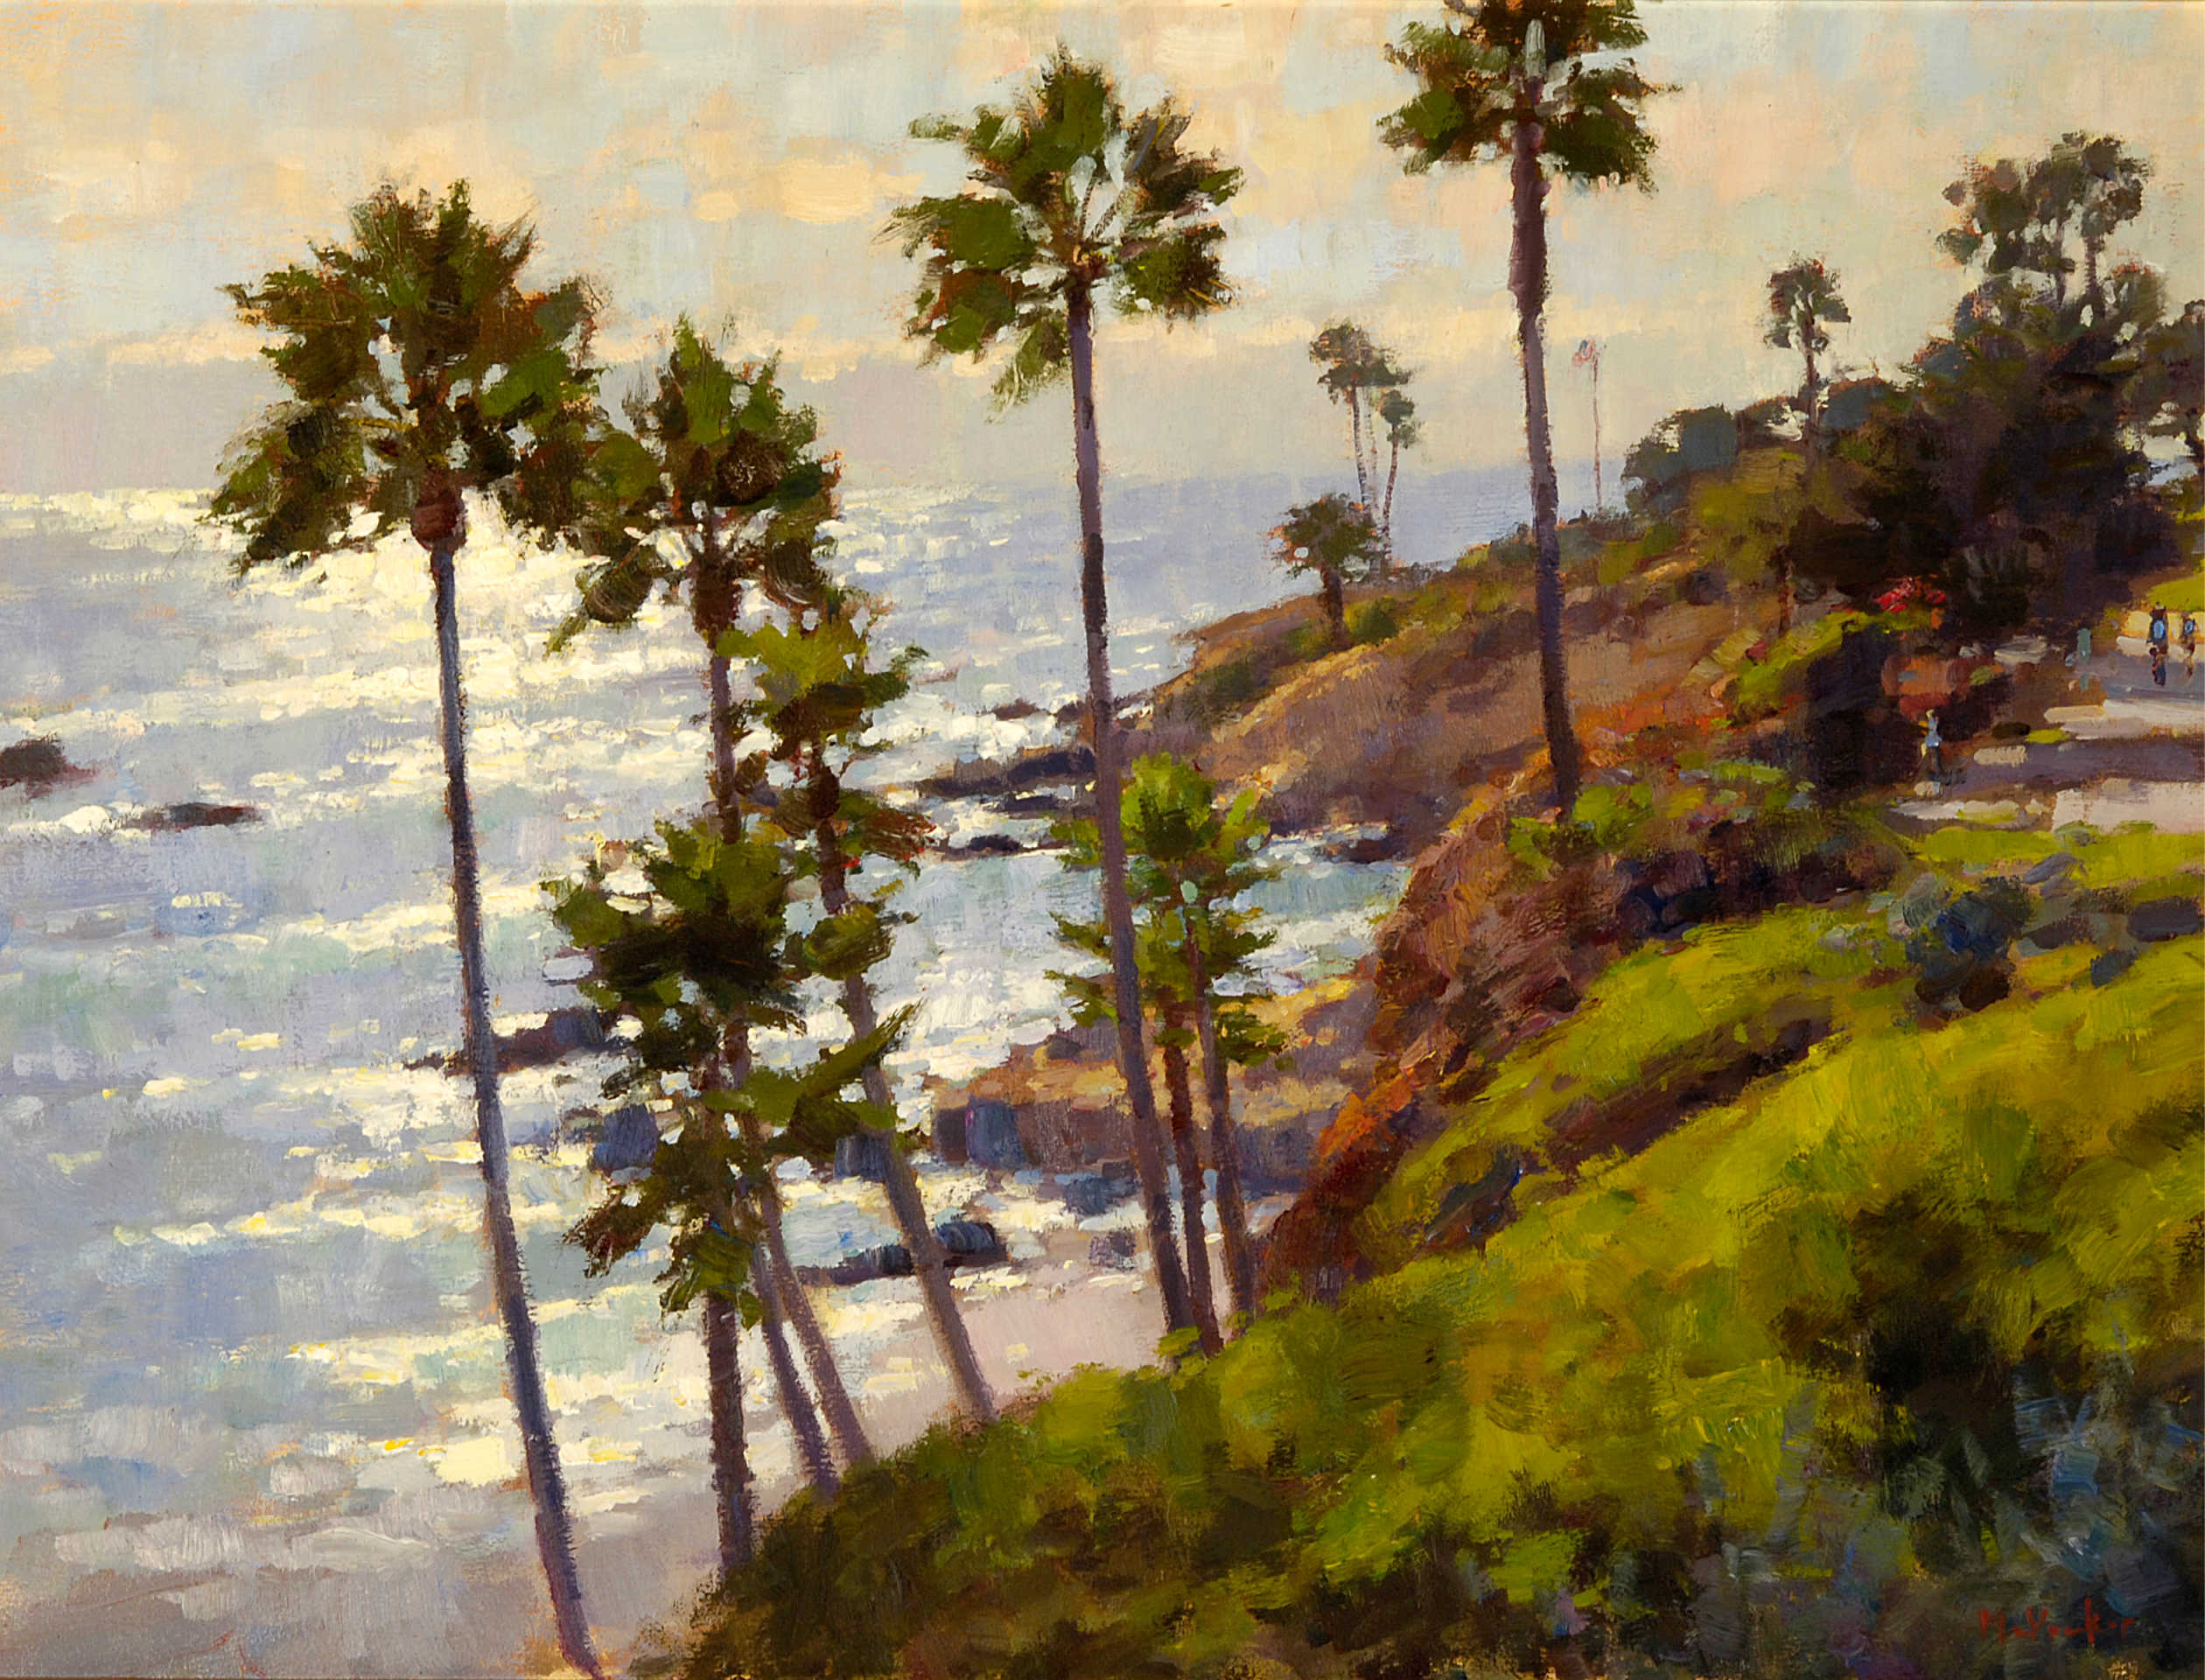 Heisler Park Sunlight by Jim McVicker, Laguna Invitational